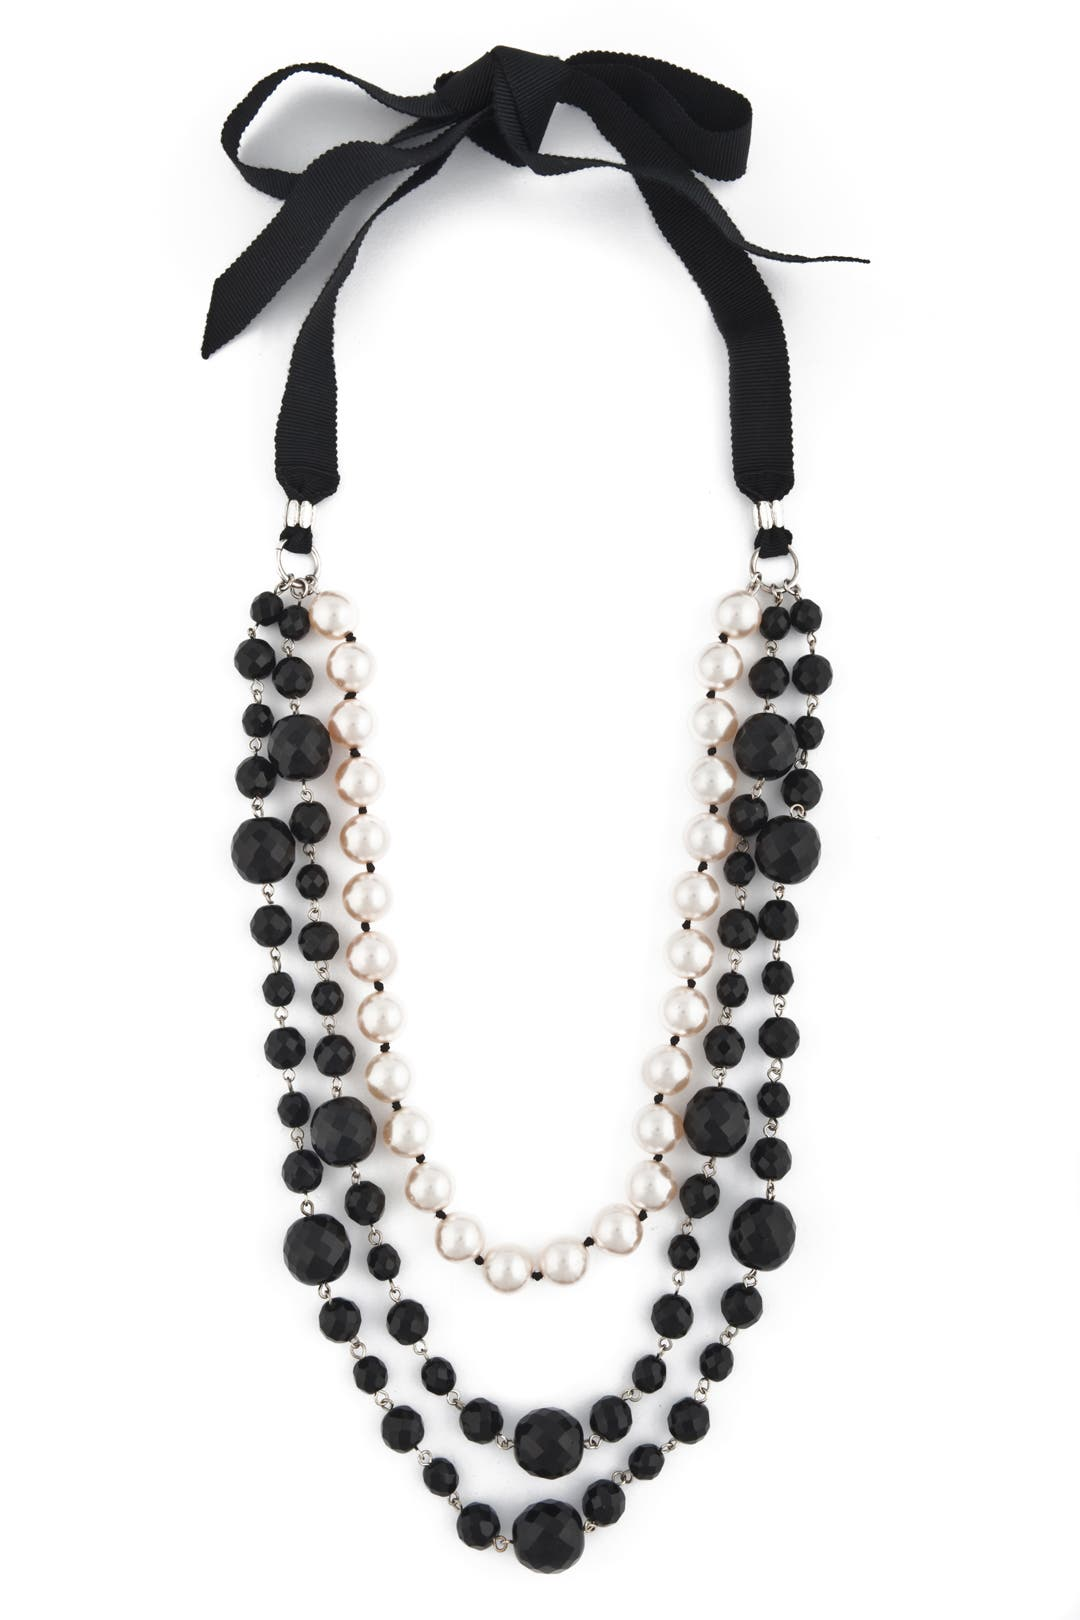 Prim and Proper Necklace by Ciner